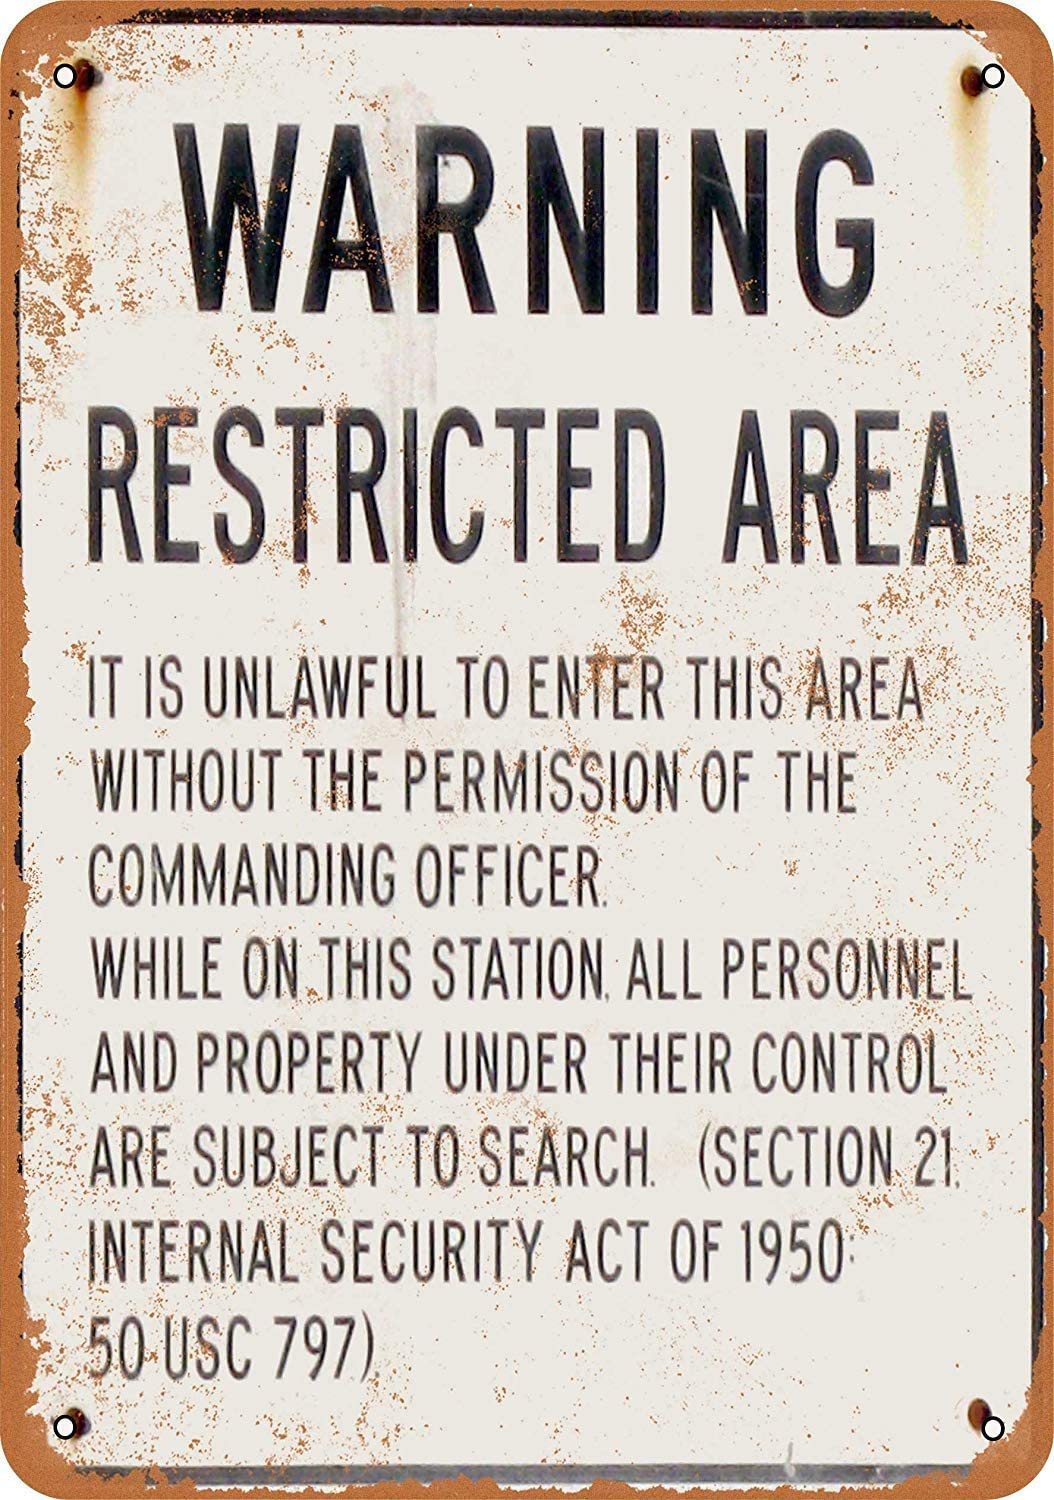 BESTWD 8X 12 Metal Sign - Warning Military Restricted Area - Vintage Look